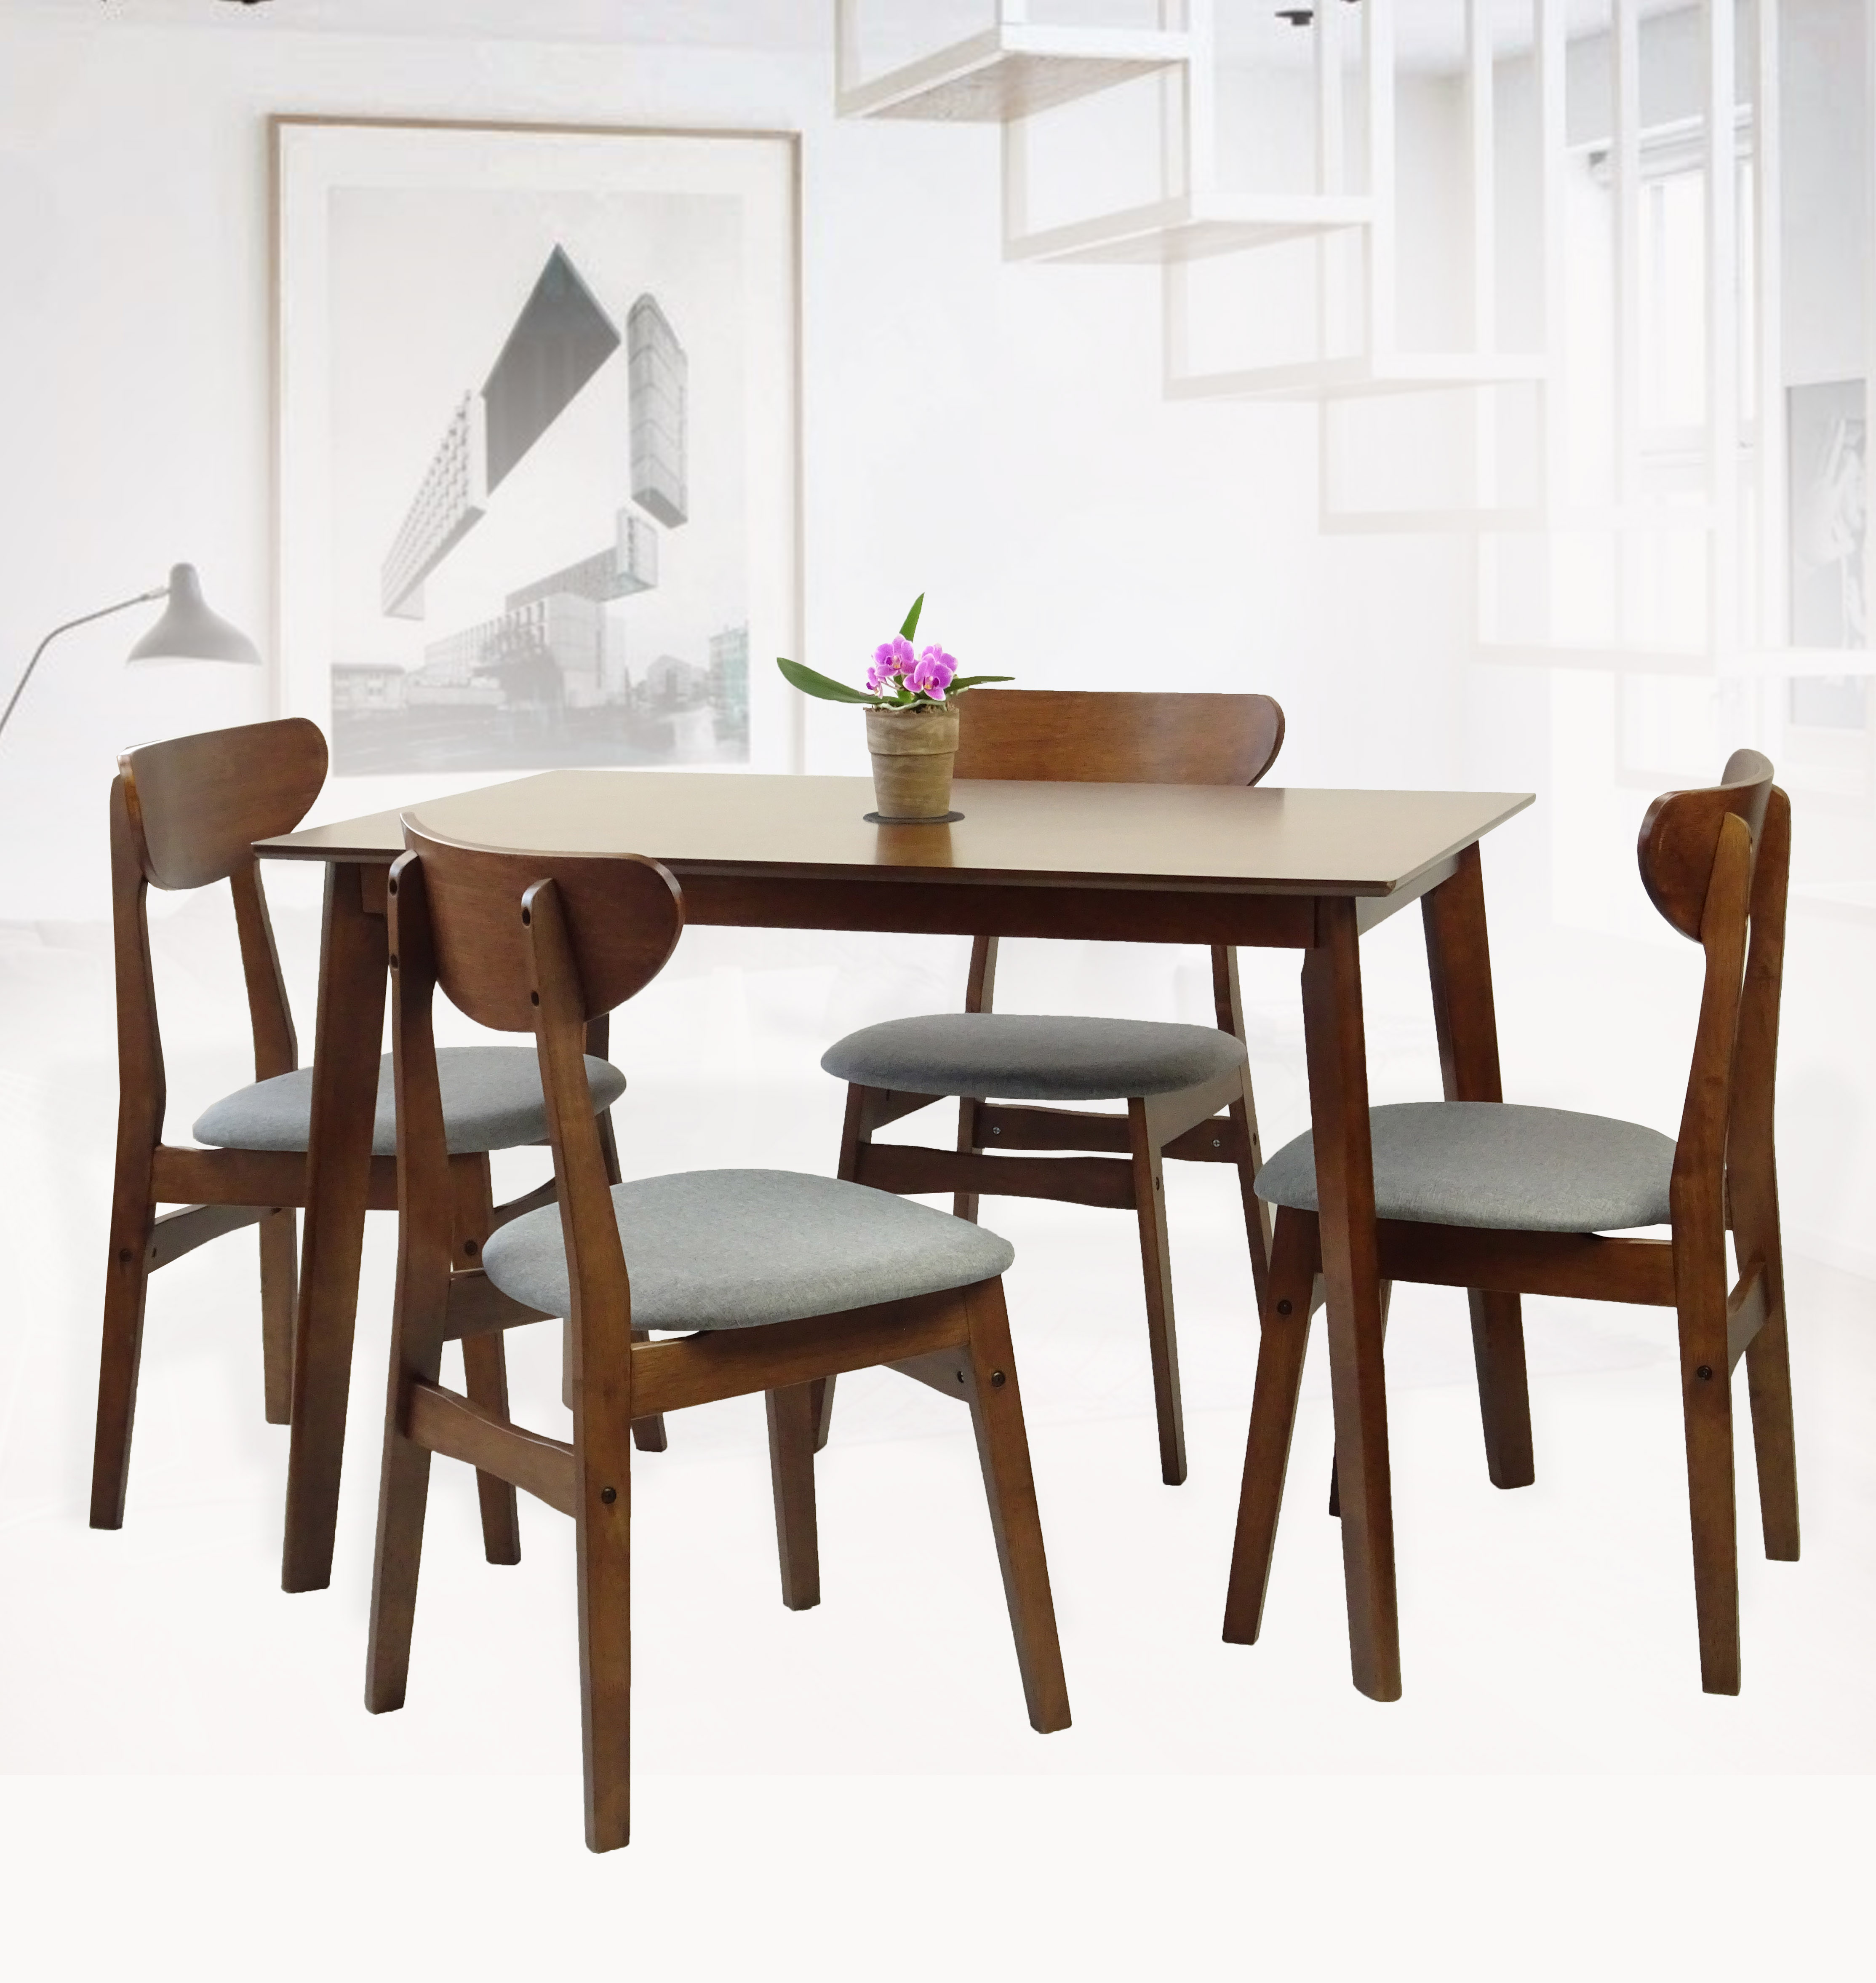 SK New Interiors Dining Kitchen Rectangular Table and 4 Yumiko Side Chairs (Set of 5) Solid Wood Medium Brown Finish